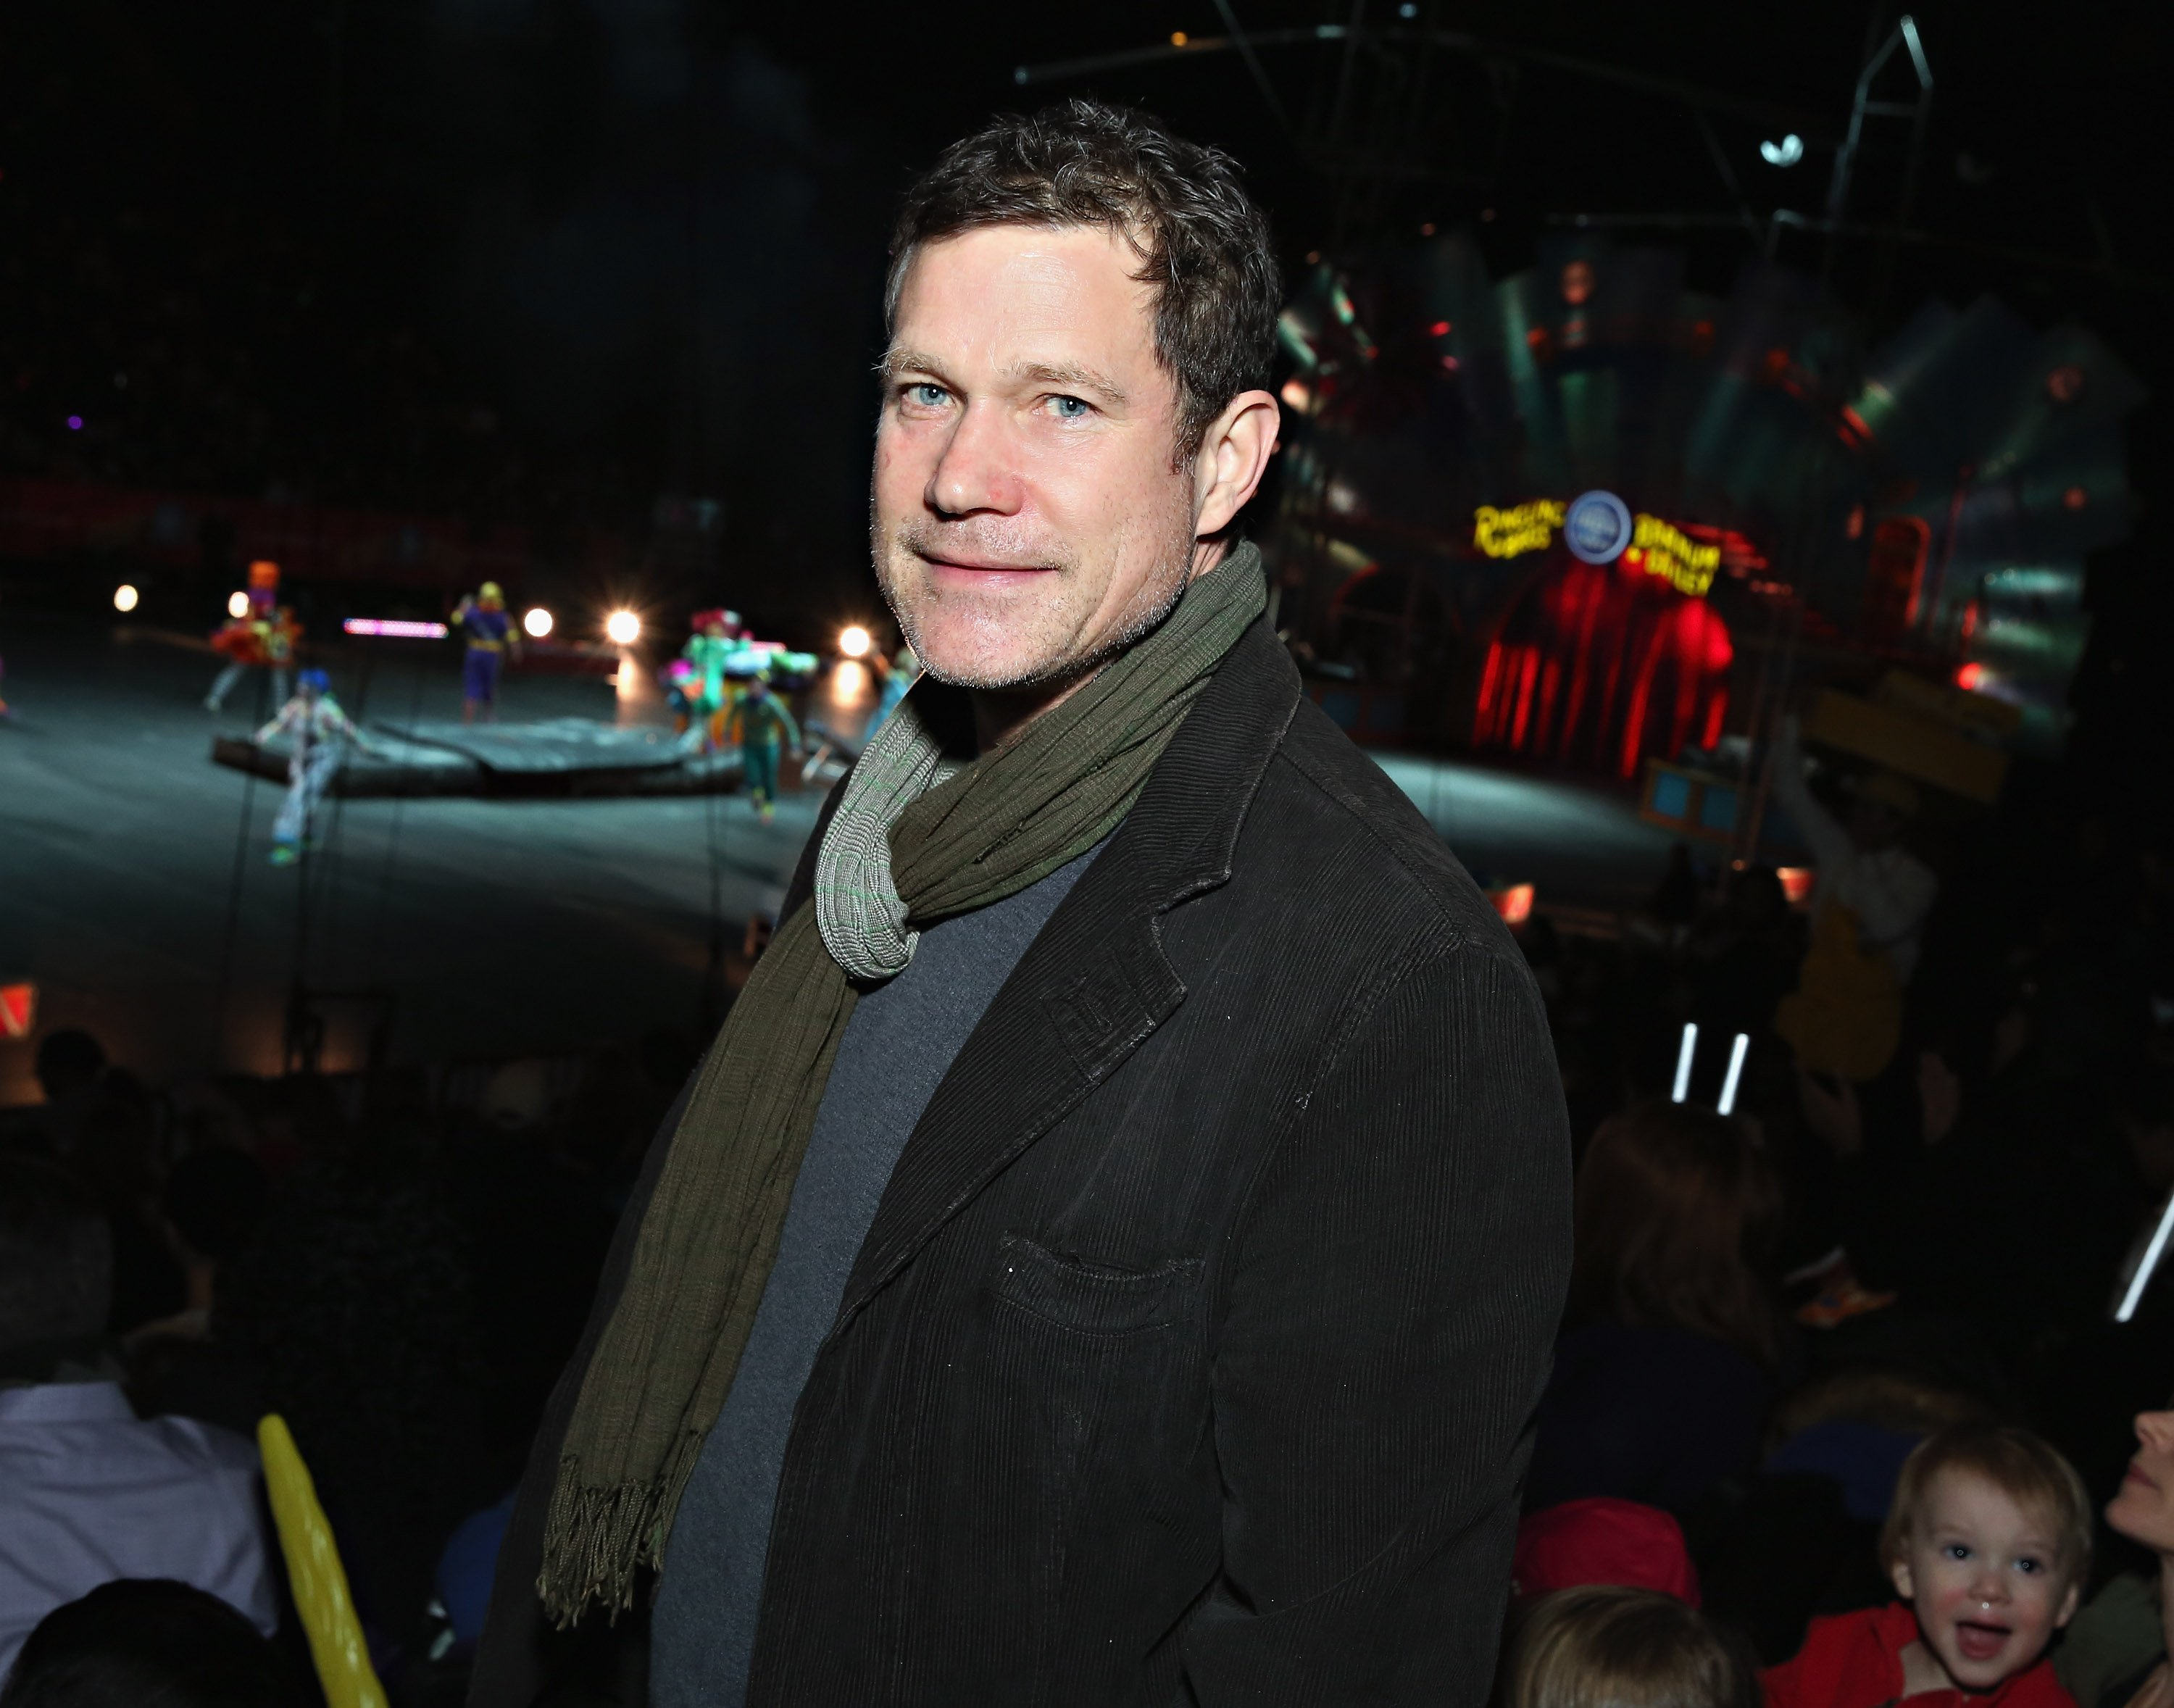 Dylan Walsh attends the New York premiere of Ringling Bros. and Barnum & Bailey presents 'CIRCUS XTREME'' at Barclays Center on February 20, 2014, in Brooklyn, NY. | Source: Getty Images.